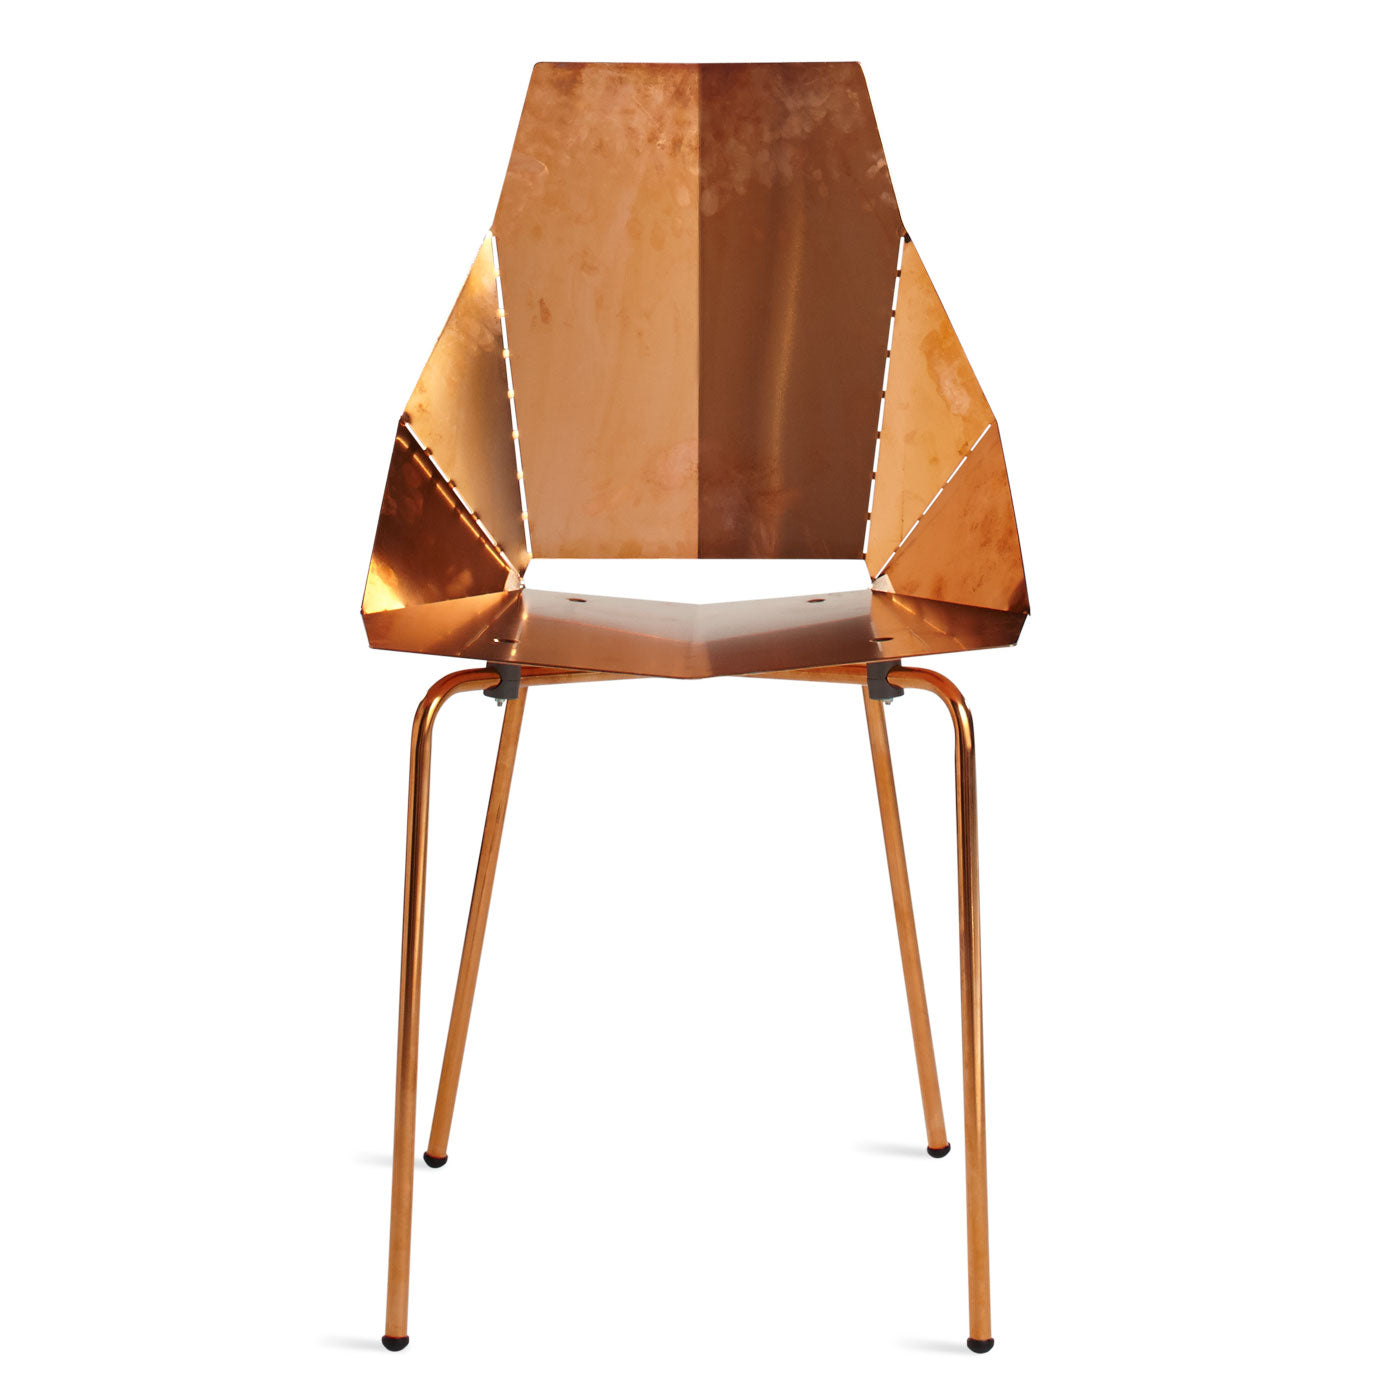 Real Good Chair - Copper - Design Distillery